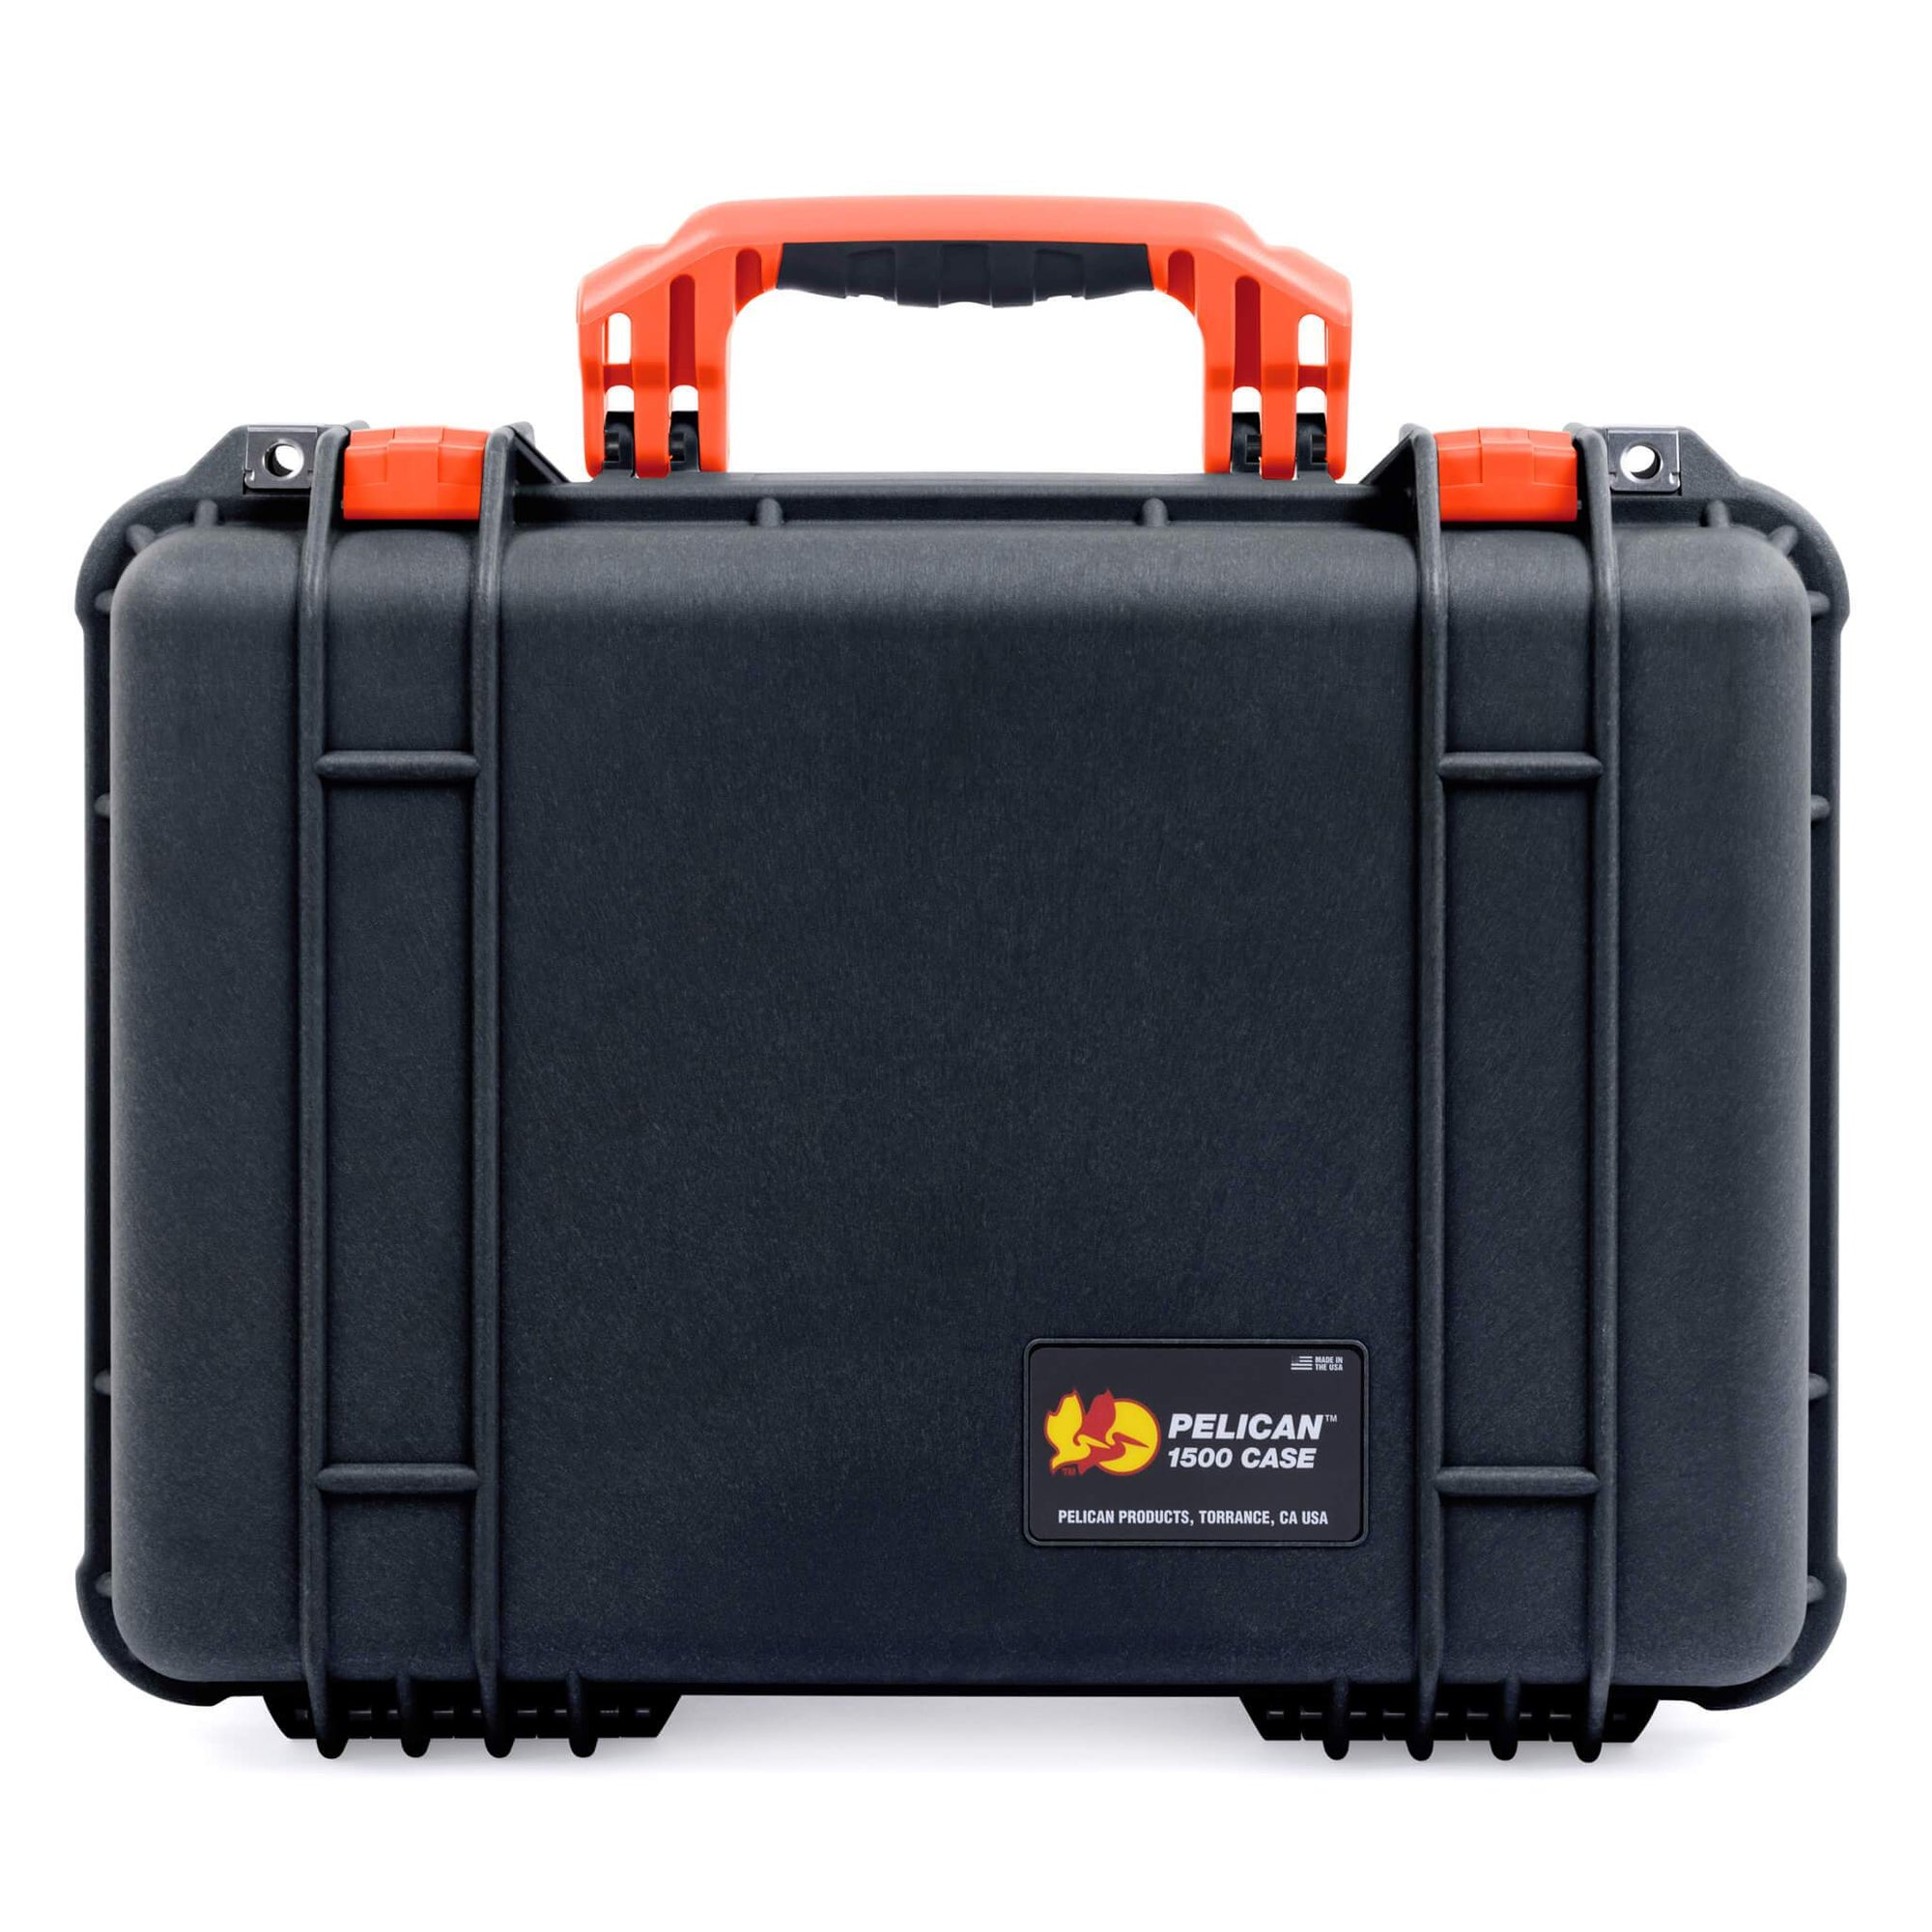 Pelican 1500 Case, Black with Orange Handle & Latches